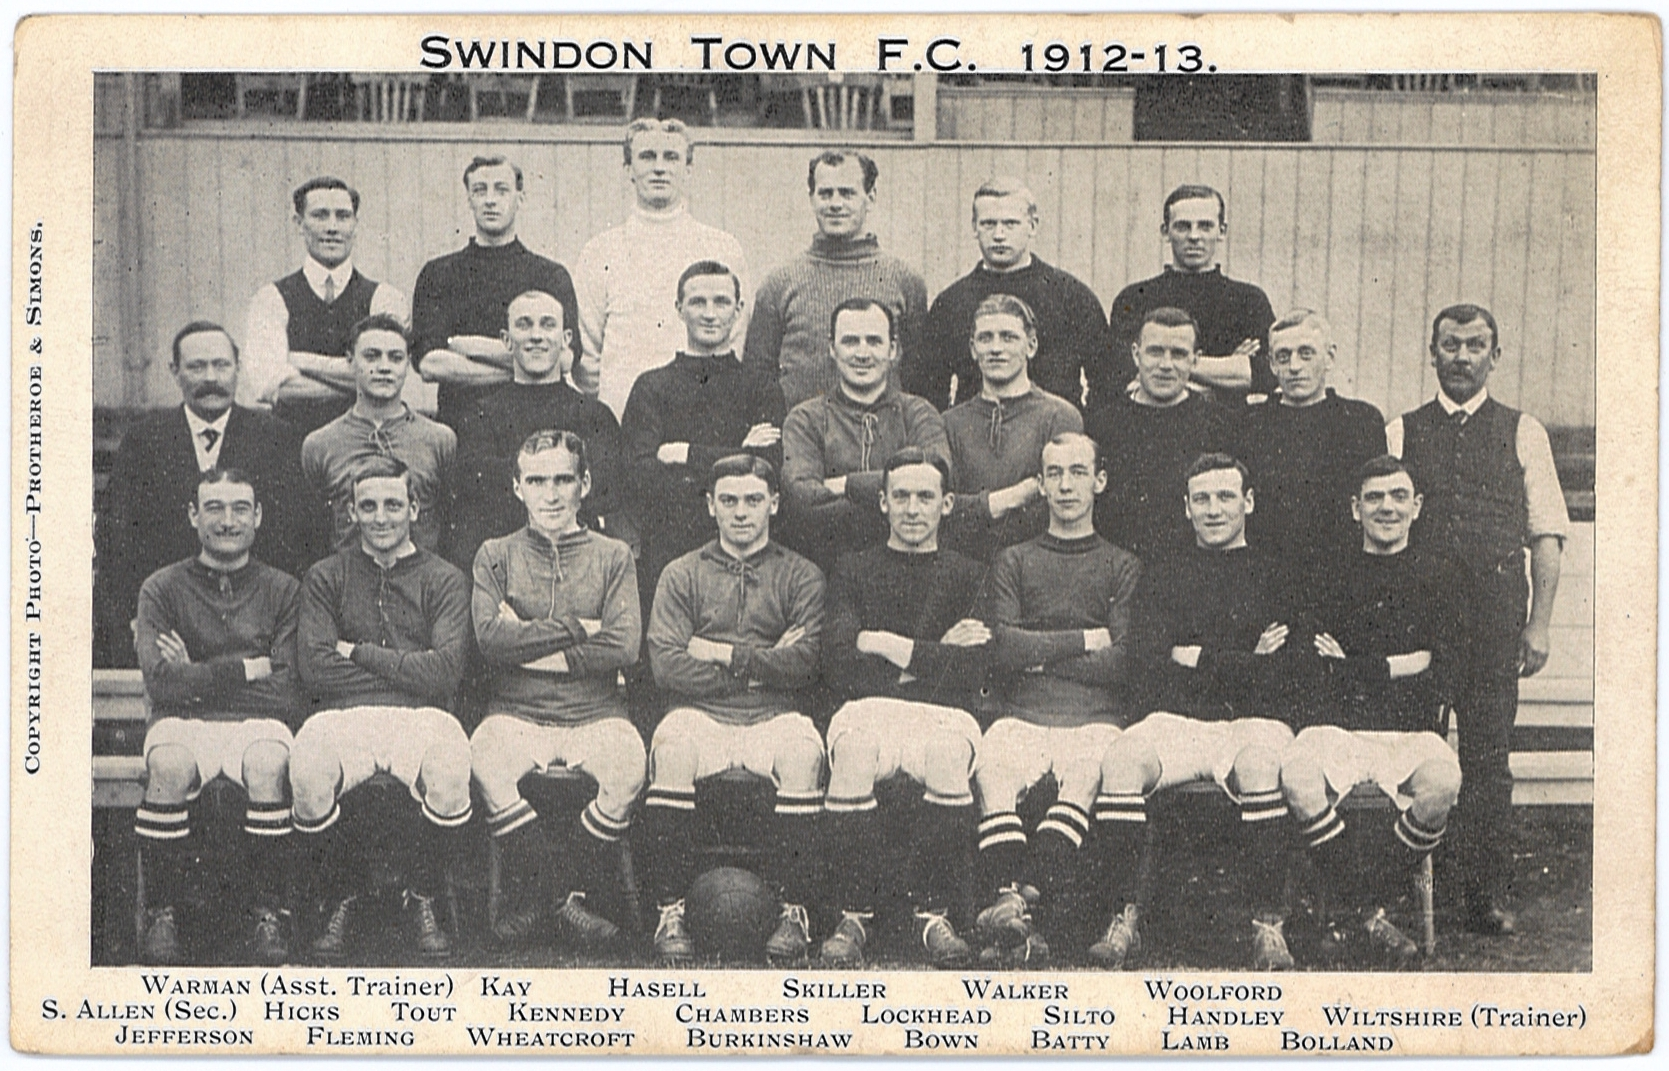 11 - County Ground - 1912 STFC with Harold Fleming